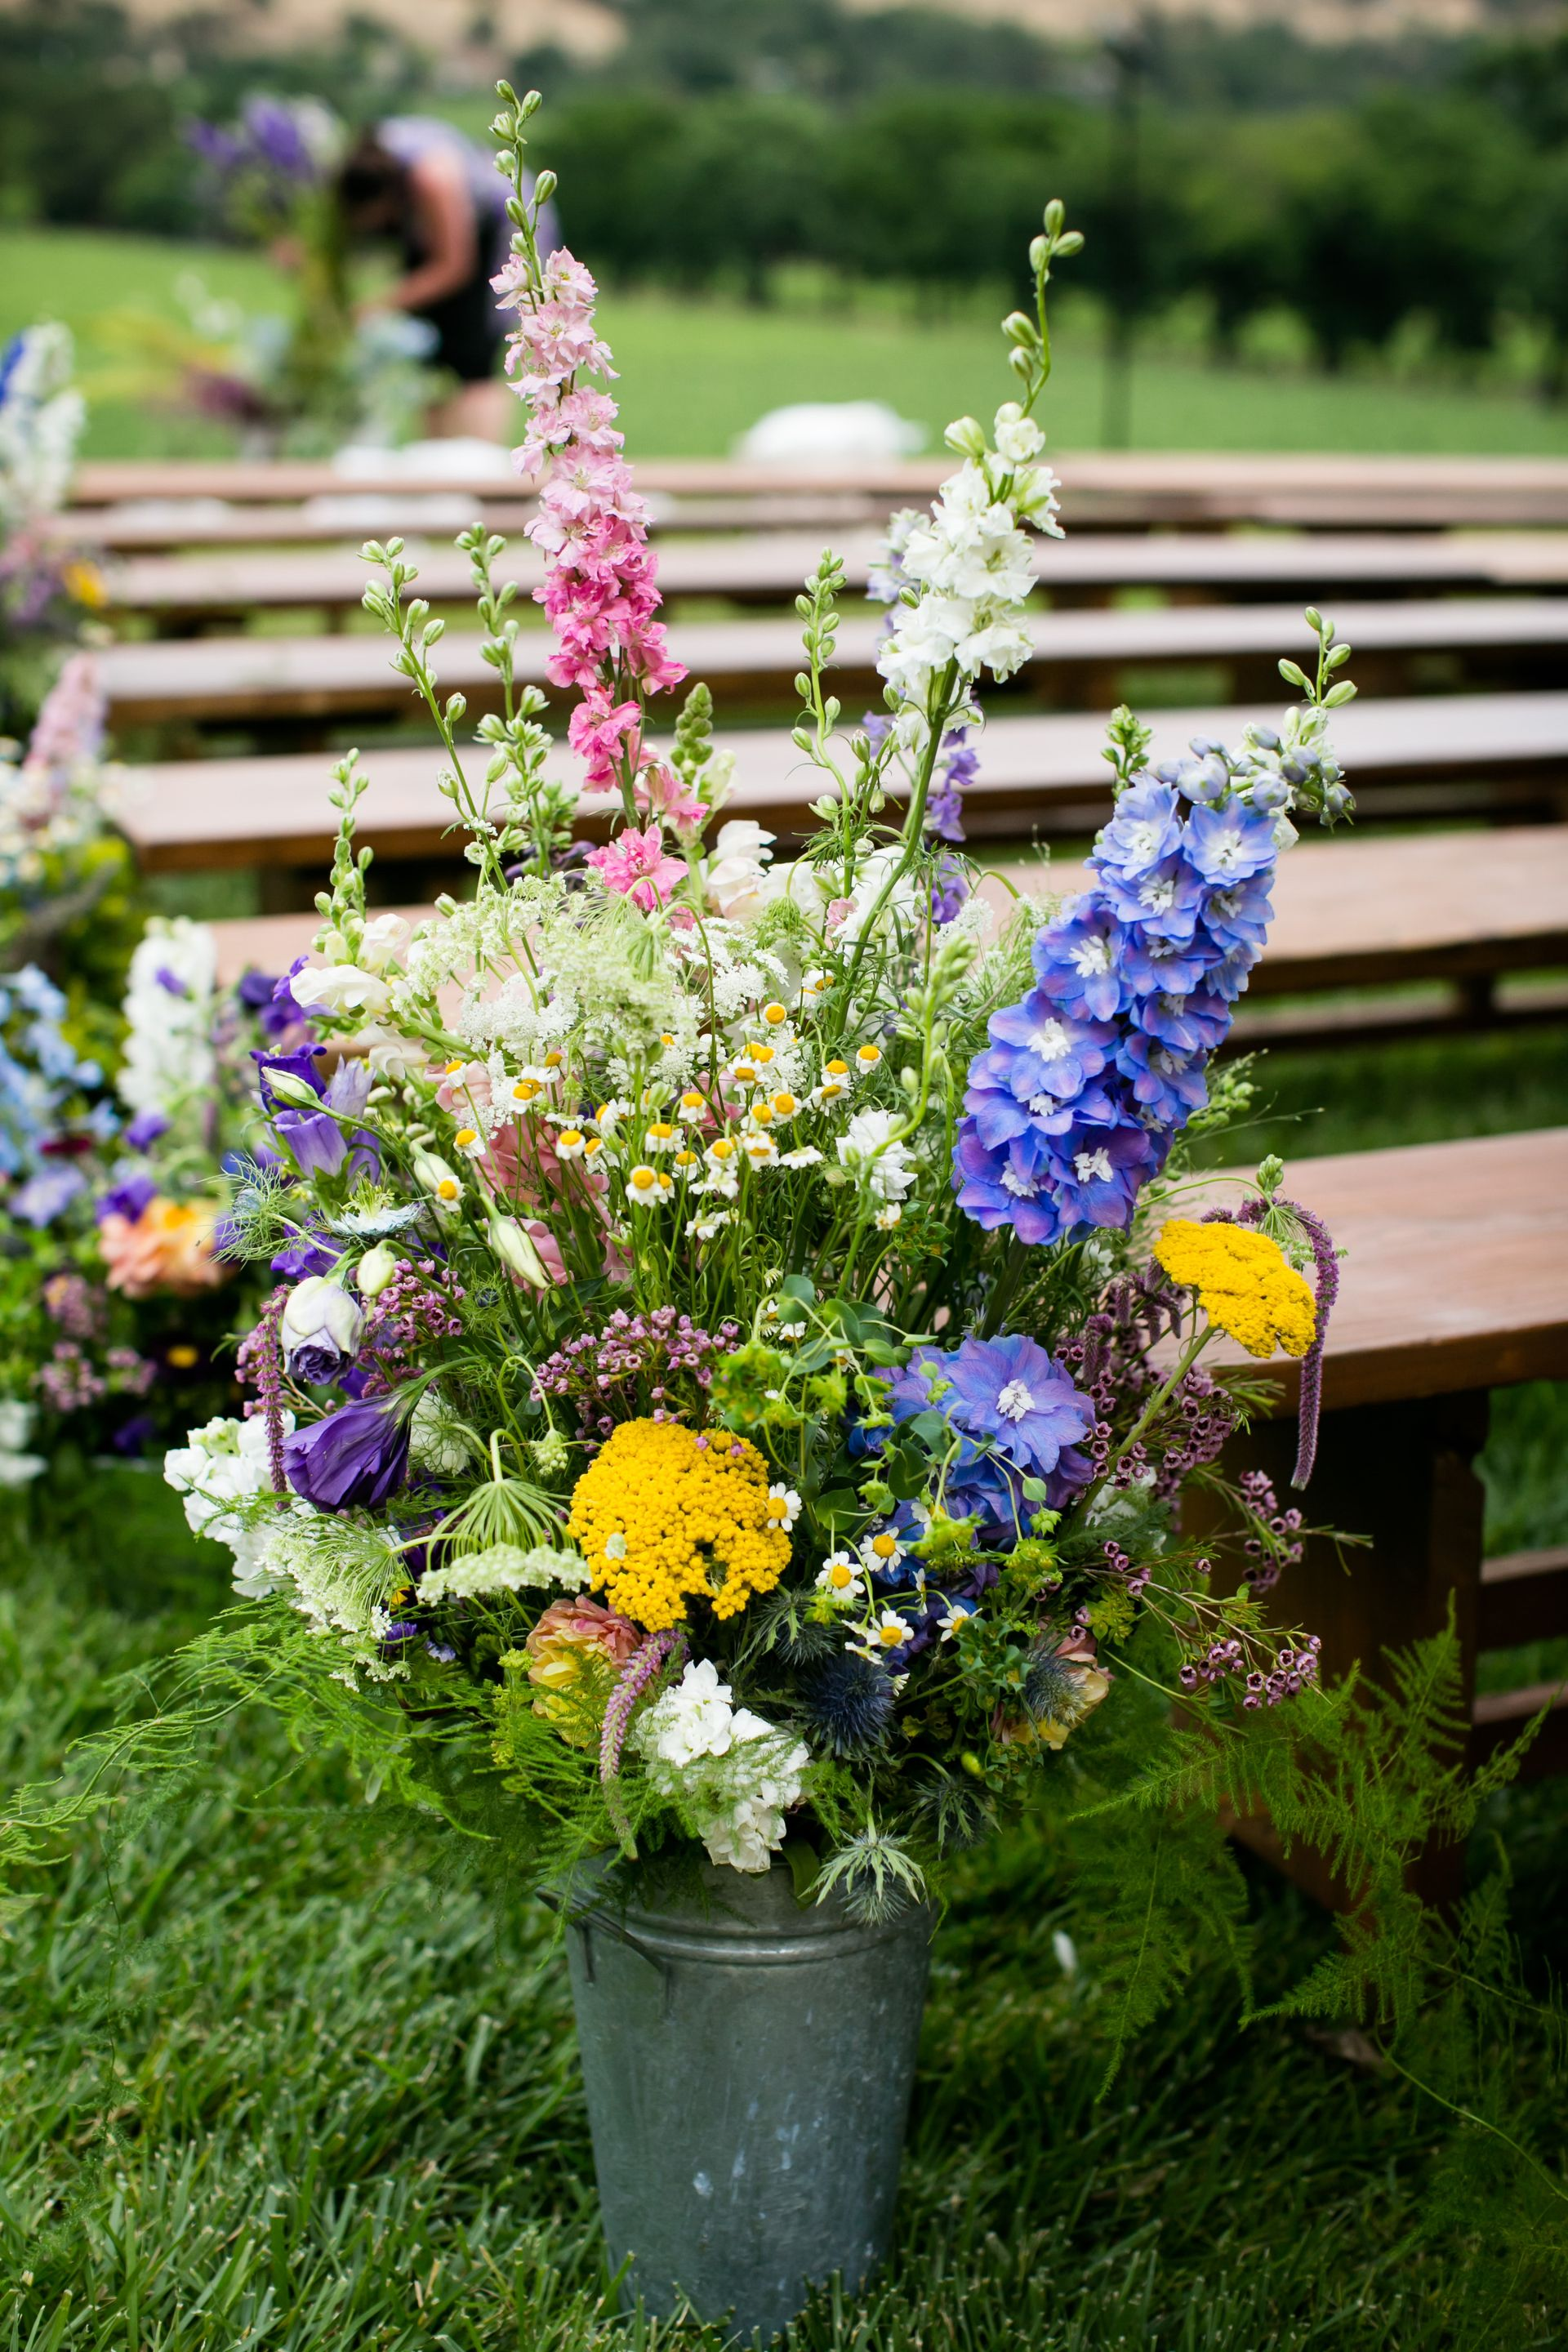 Large Floral Arrangements Of Colorful Wildflowers